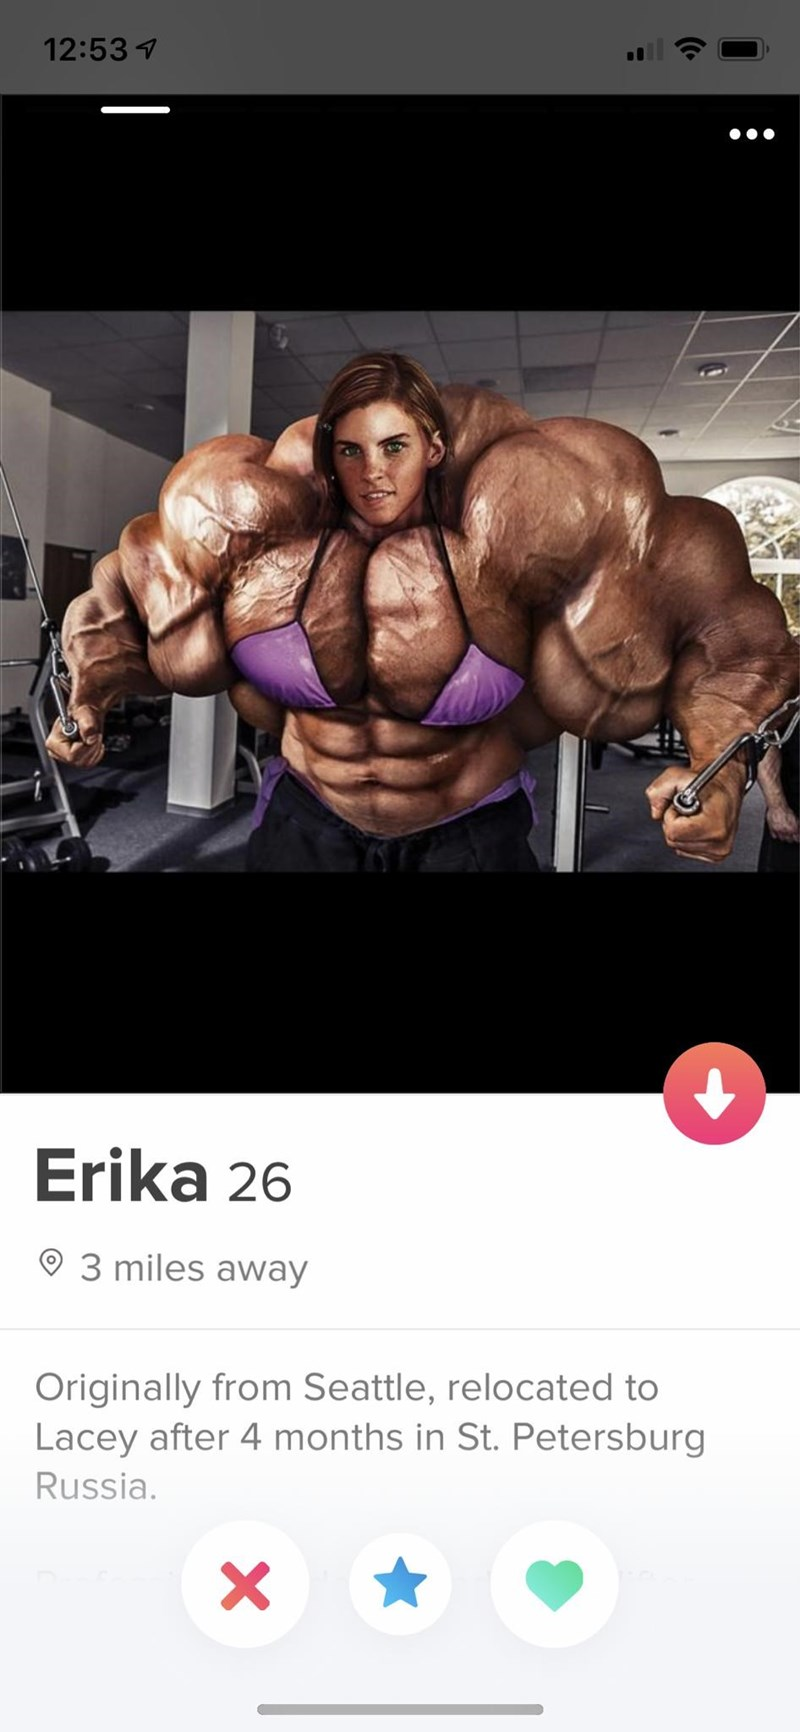 Bodybuilding - 12:53 Erika 26 93 miles away Originally from Seattle, relocated to Lacey after 4 months in St. Petersburg Russia